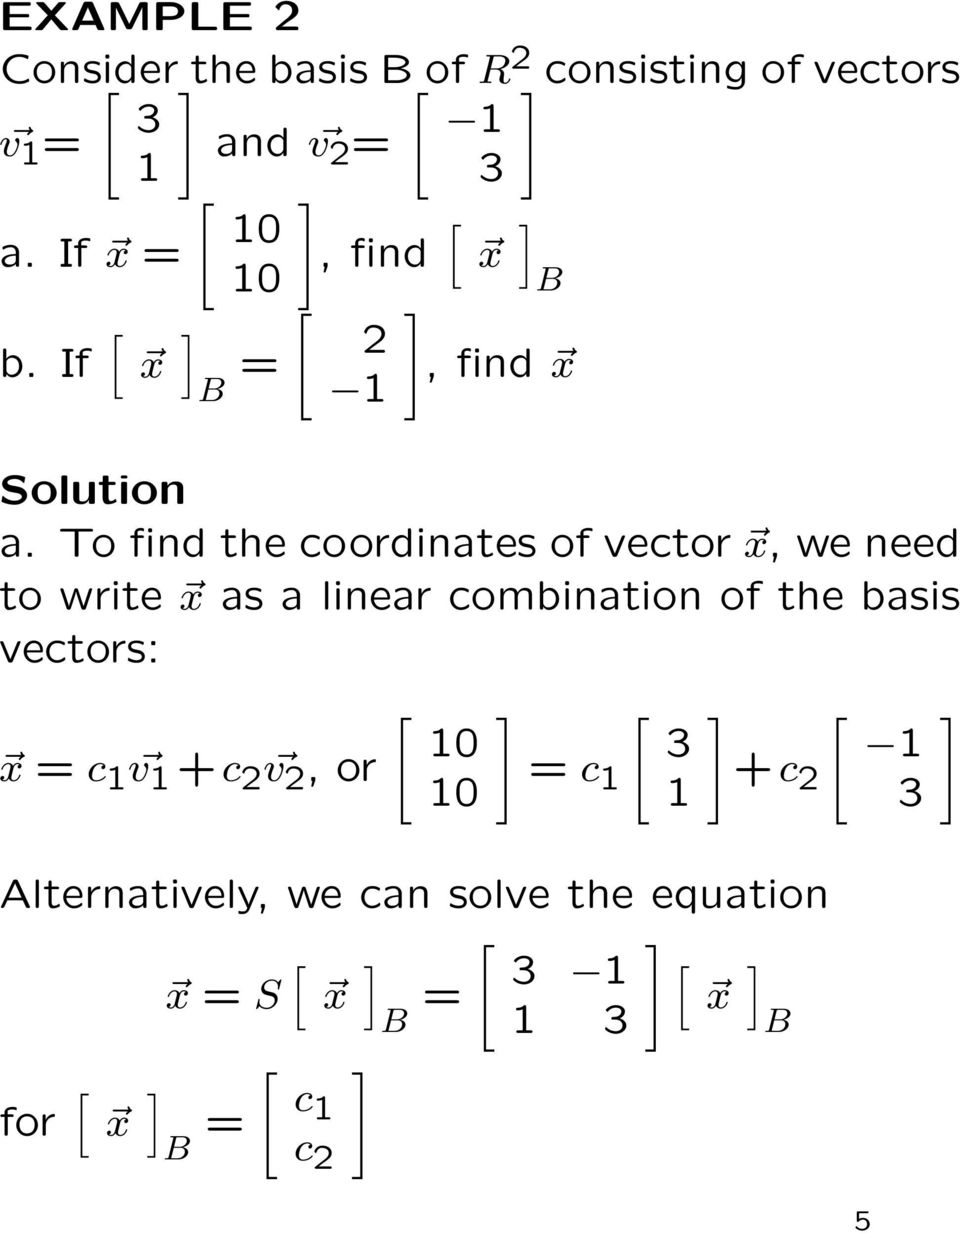 To find the coordinates of vector x, we need to write x as a linear